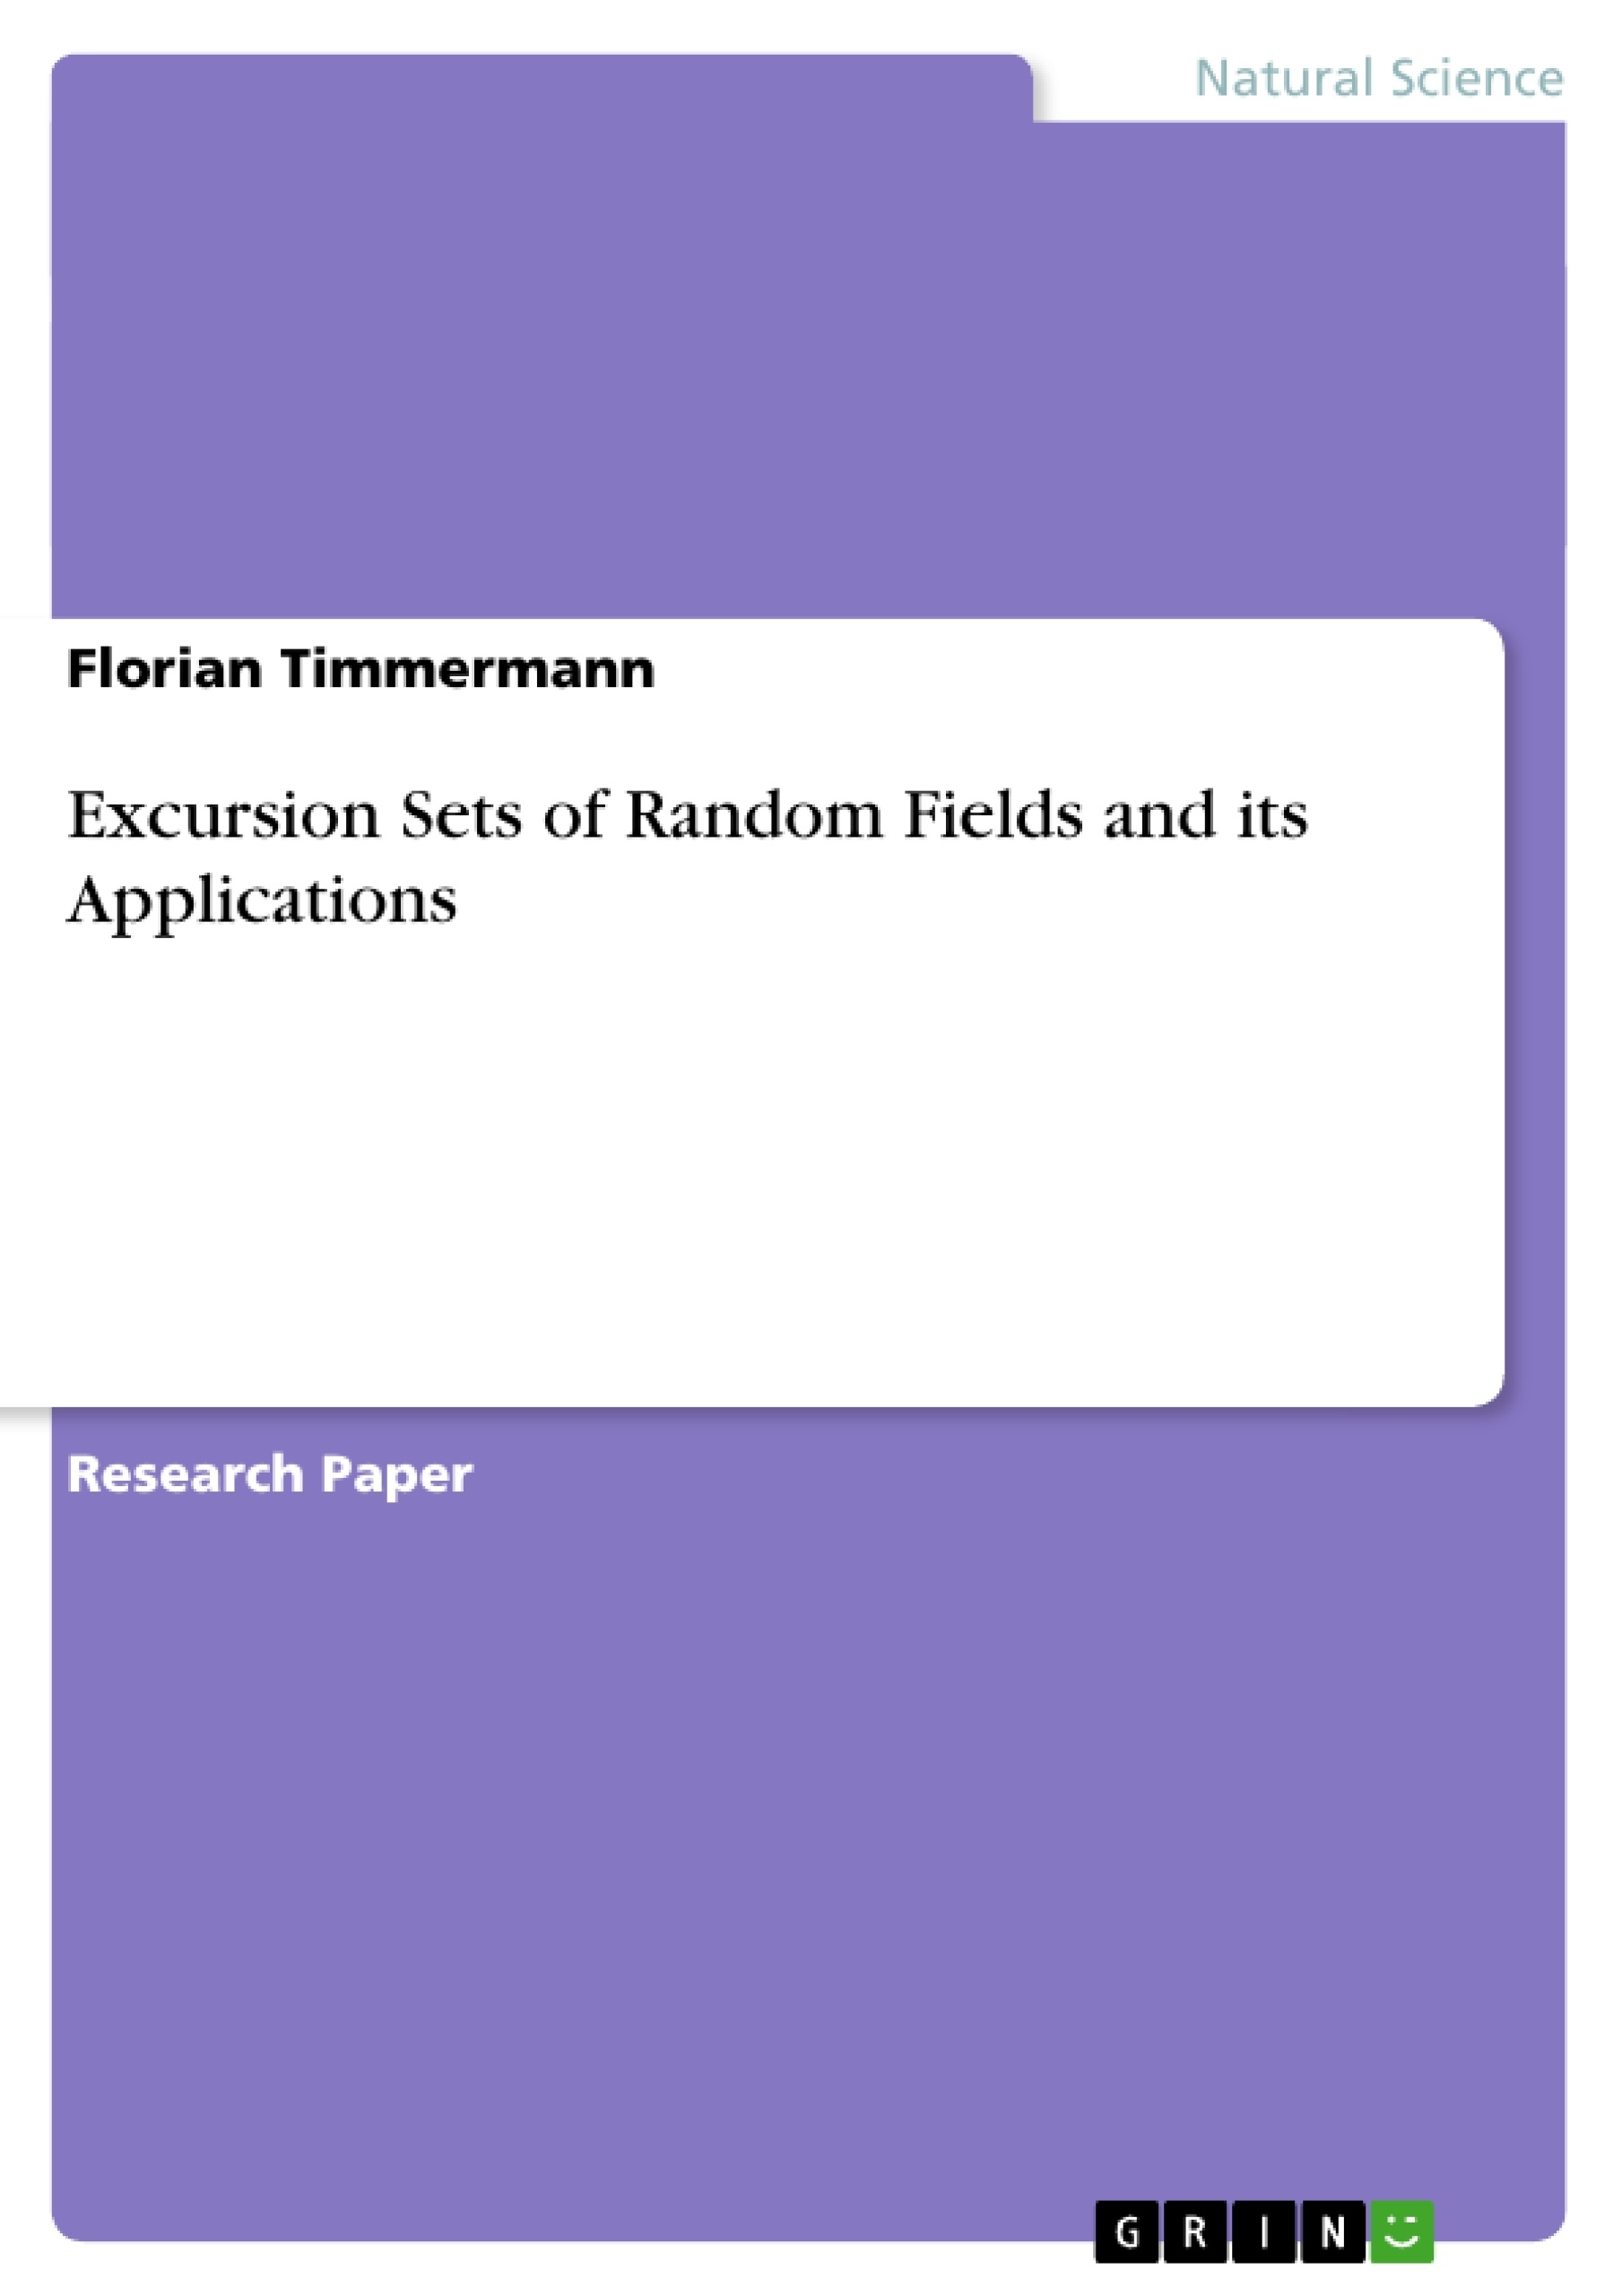 Title: Excursion Sets of Random Fields and its Applications